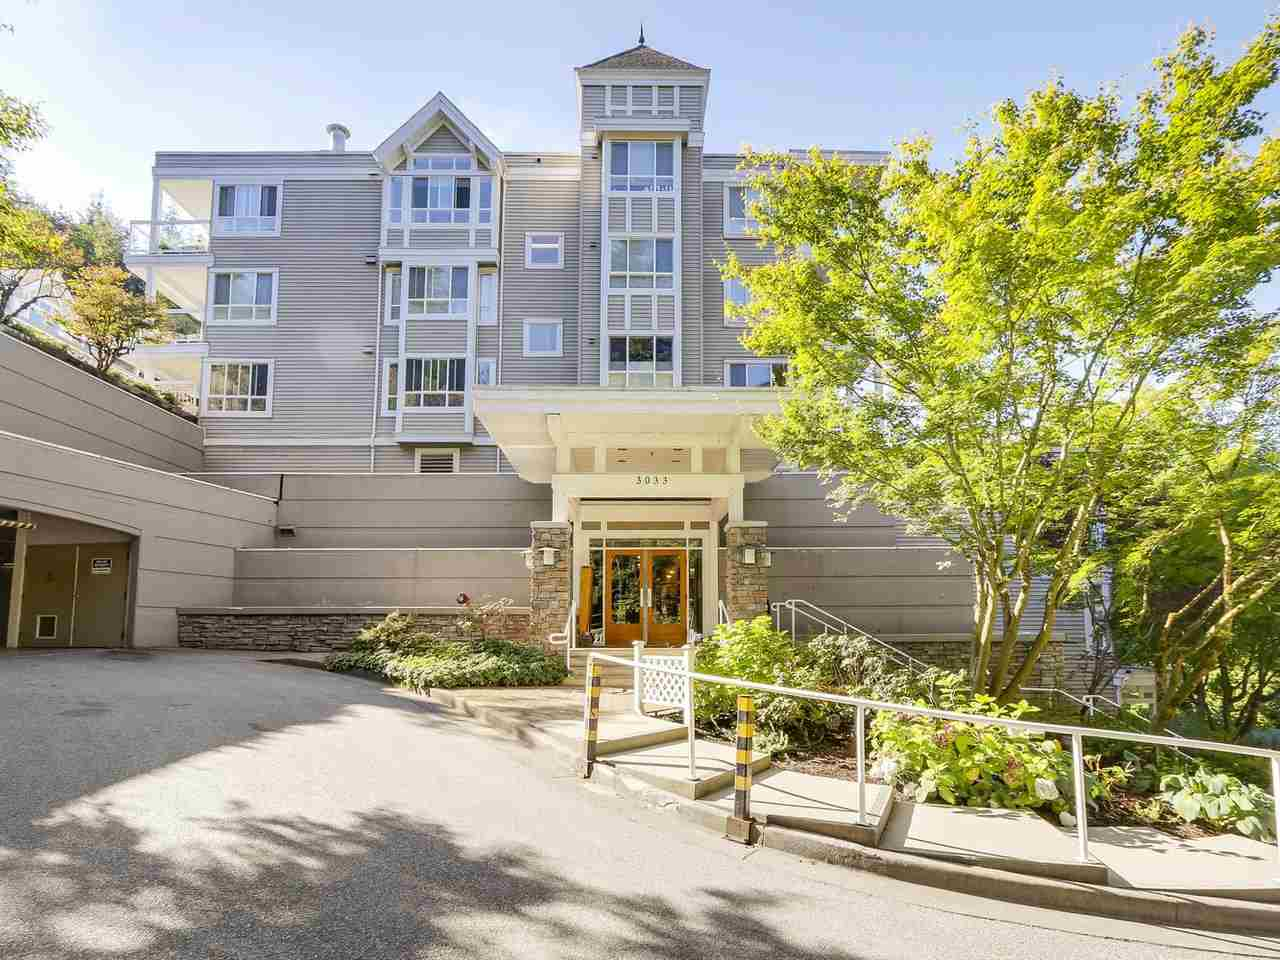 "Main Photo: 203 3033 TERRAVISTA Place in Port Moody: Port Moody Centre Condo for sale in ""THE GLENMORE"" : MLS®# R2210031"